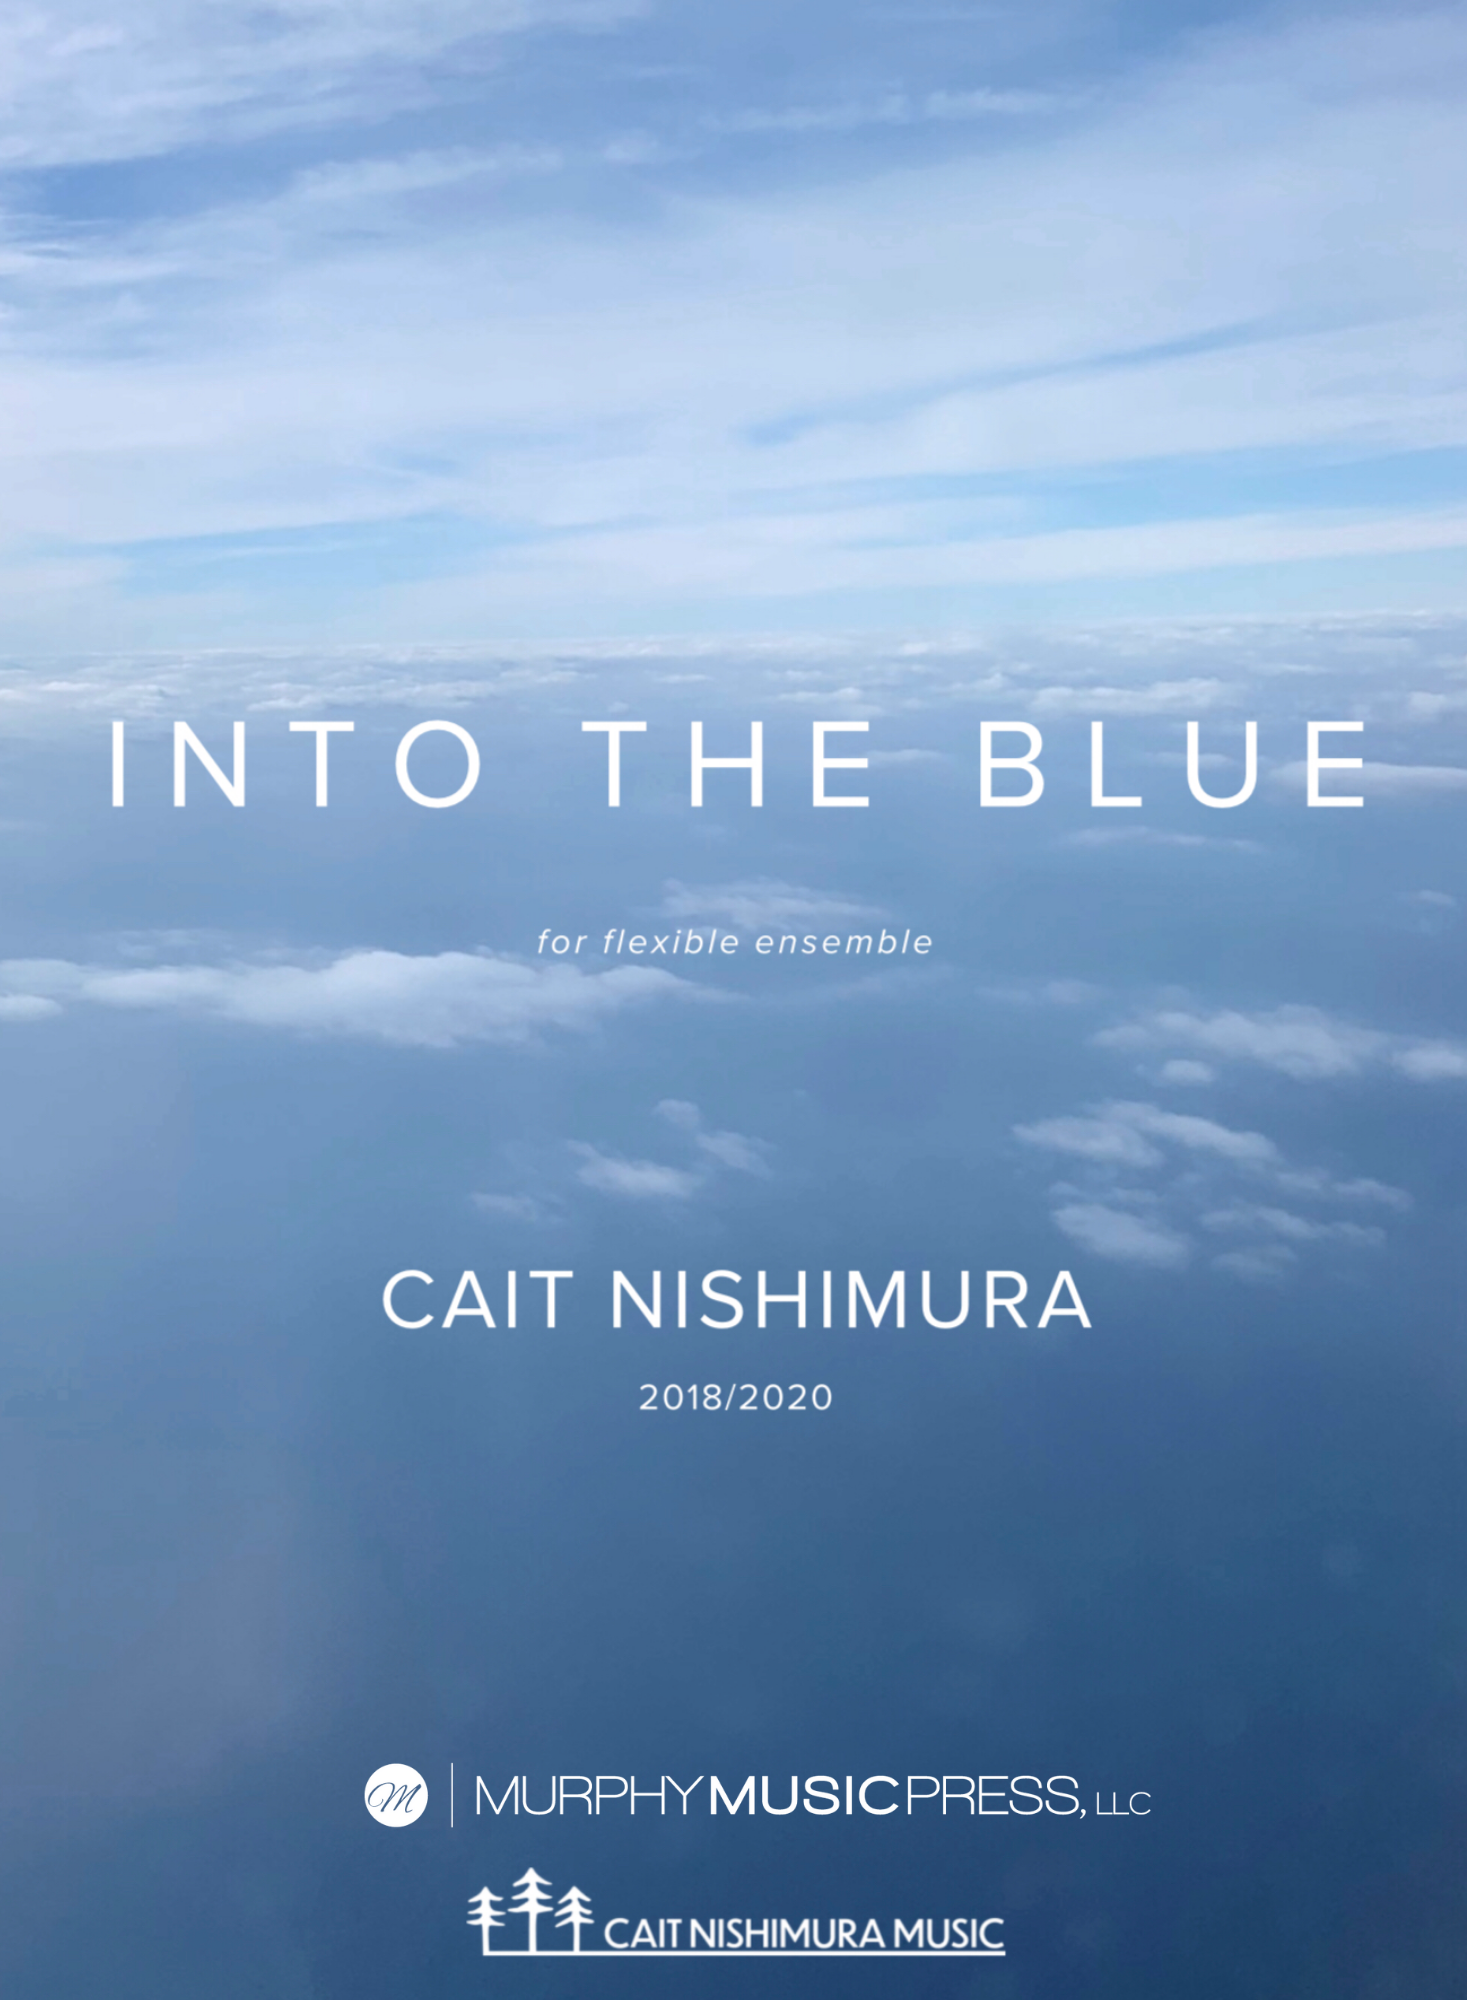 Into The Blue (Flex Band Version) by Cait Nishimura